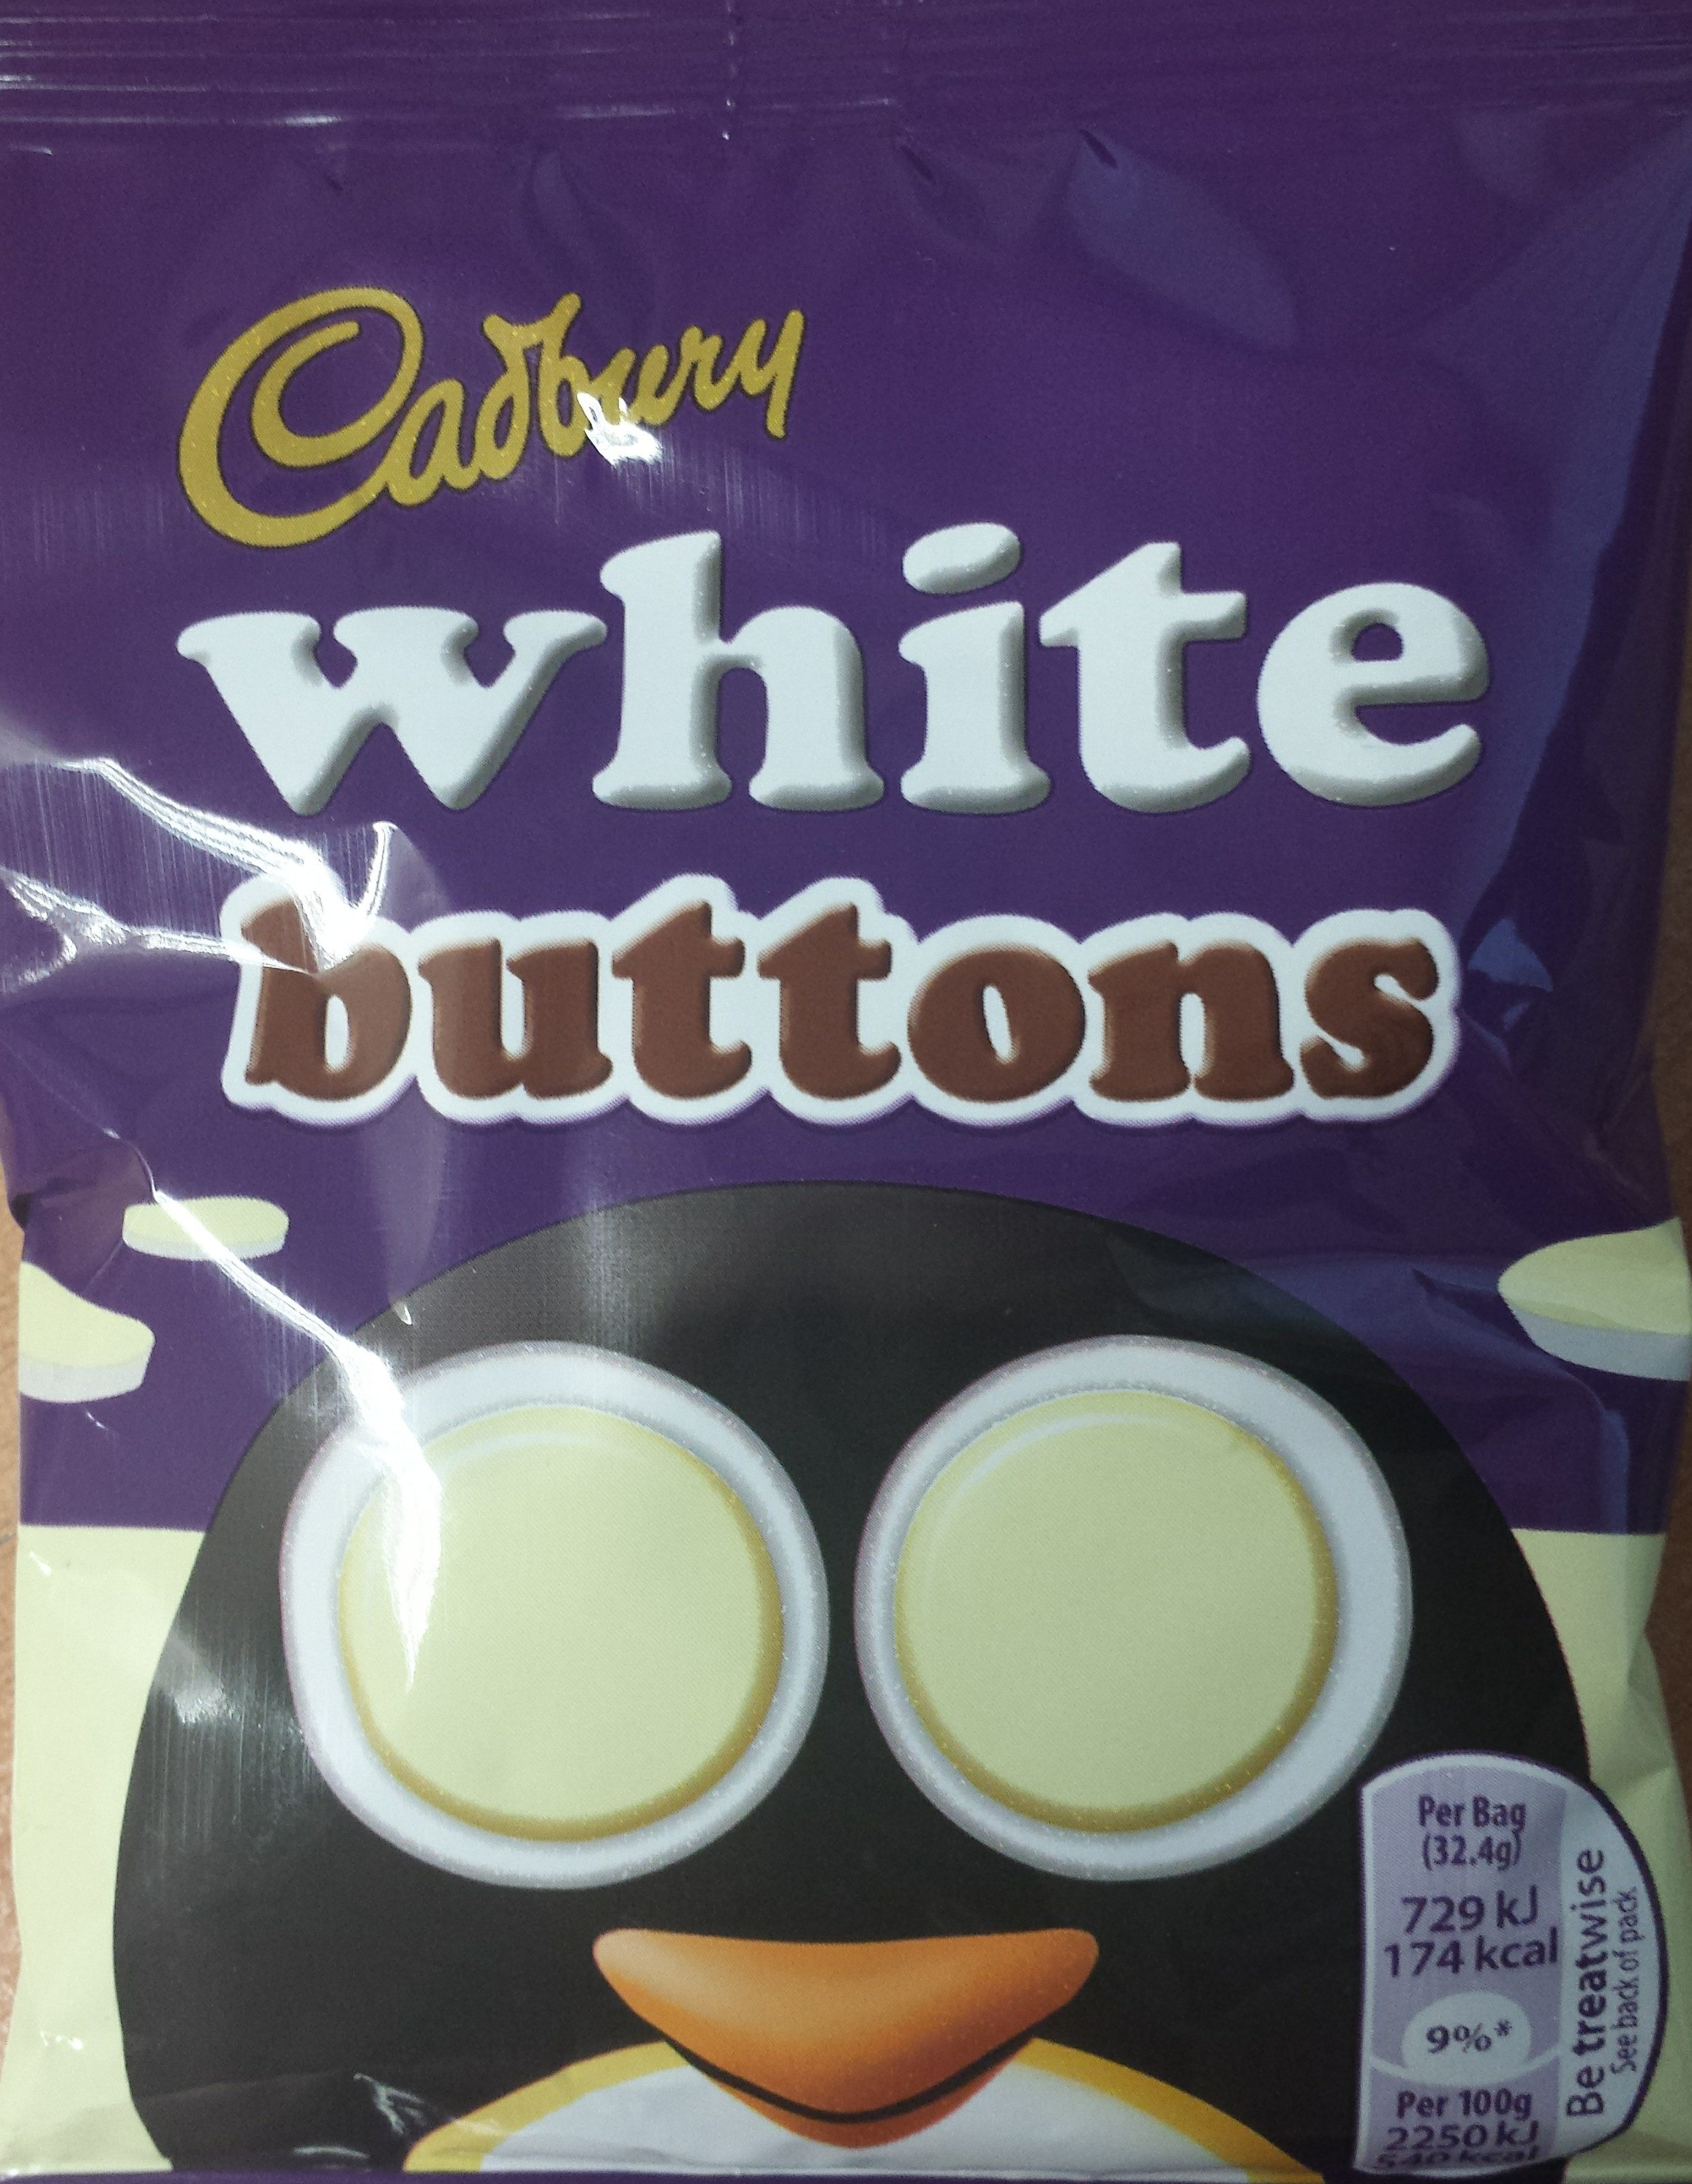 Cadbury buttons chocolate pieces white chocolate - Product - en